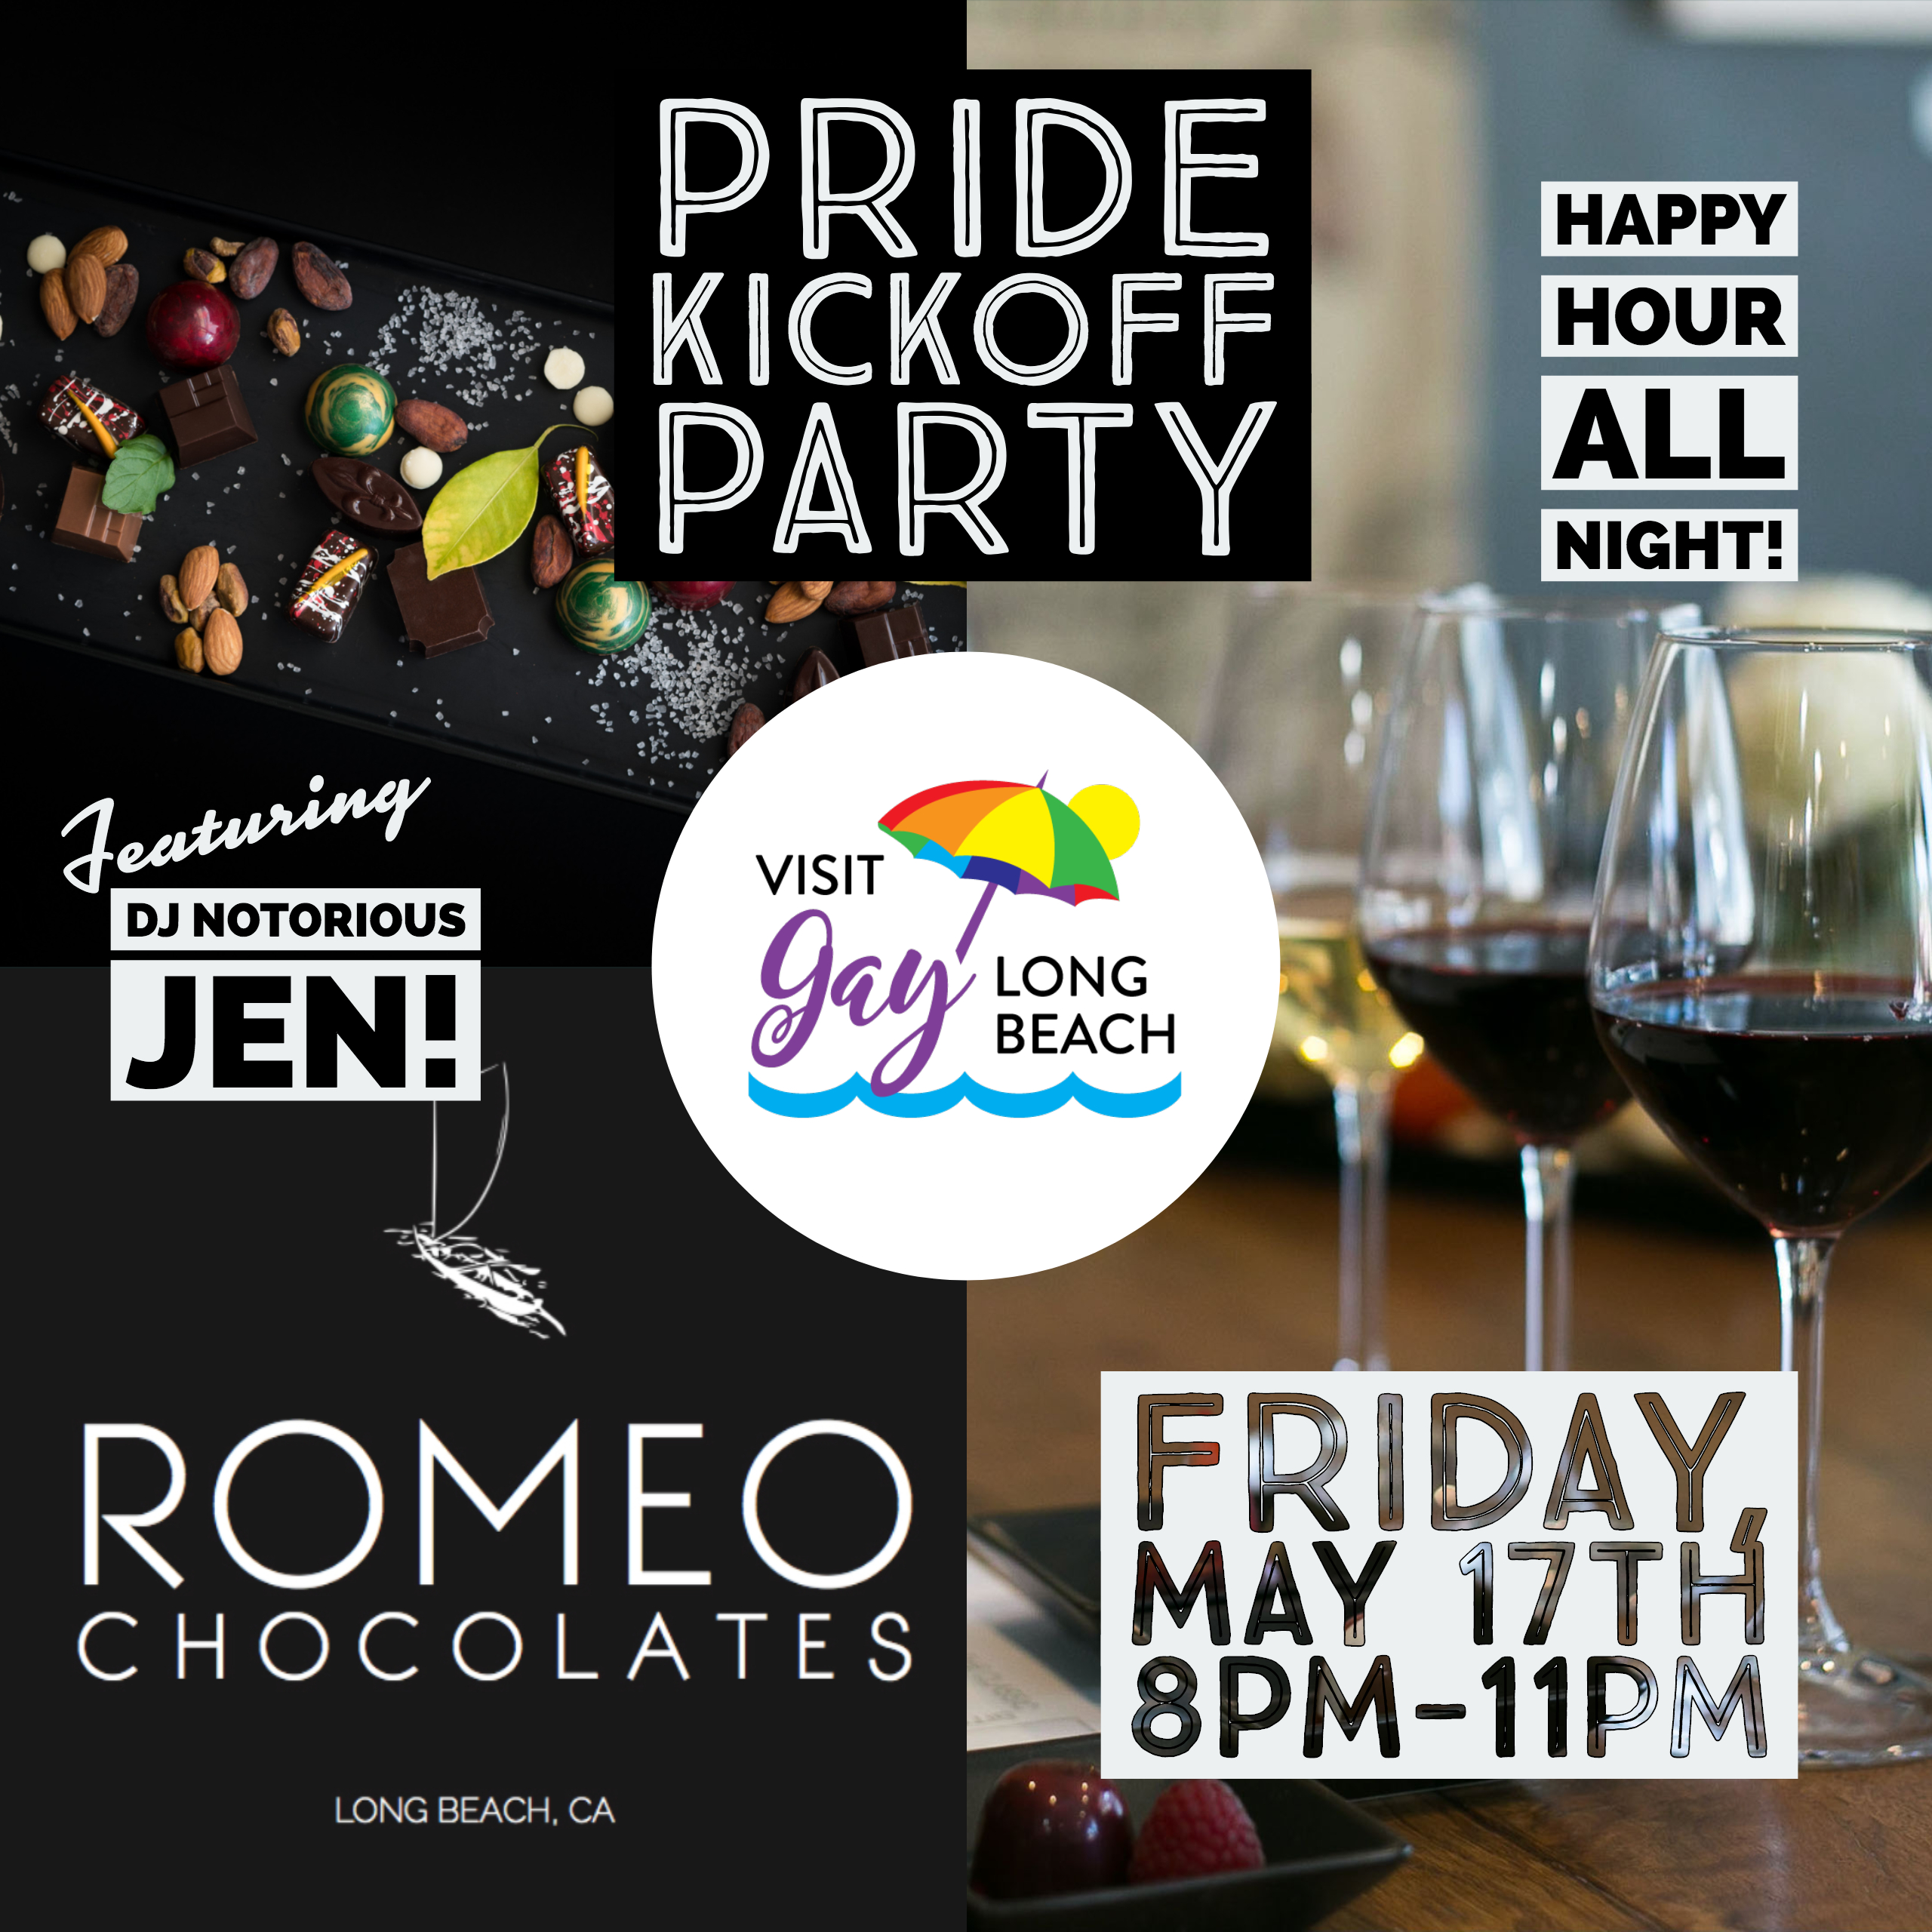 Visit Gay Long Beach's Pride Kickoff Party